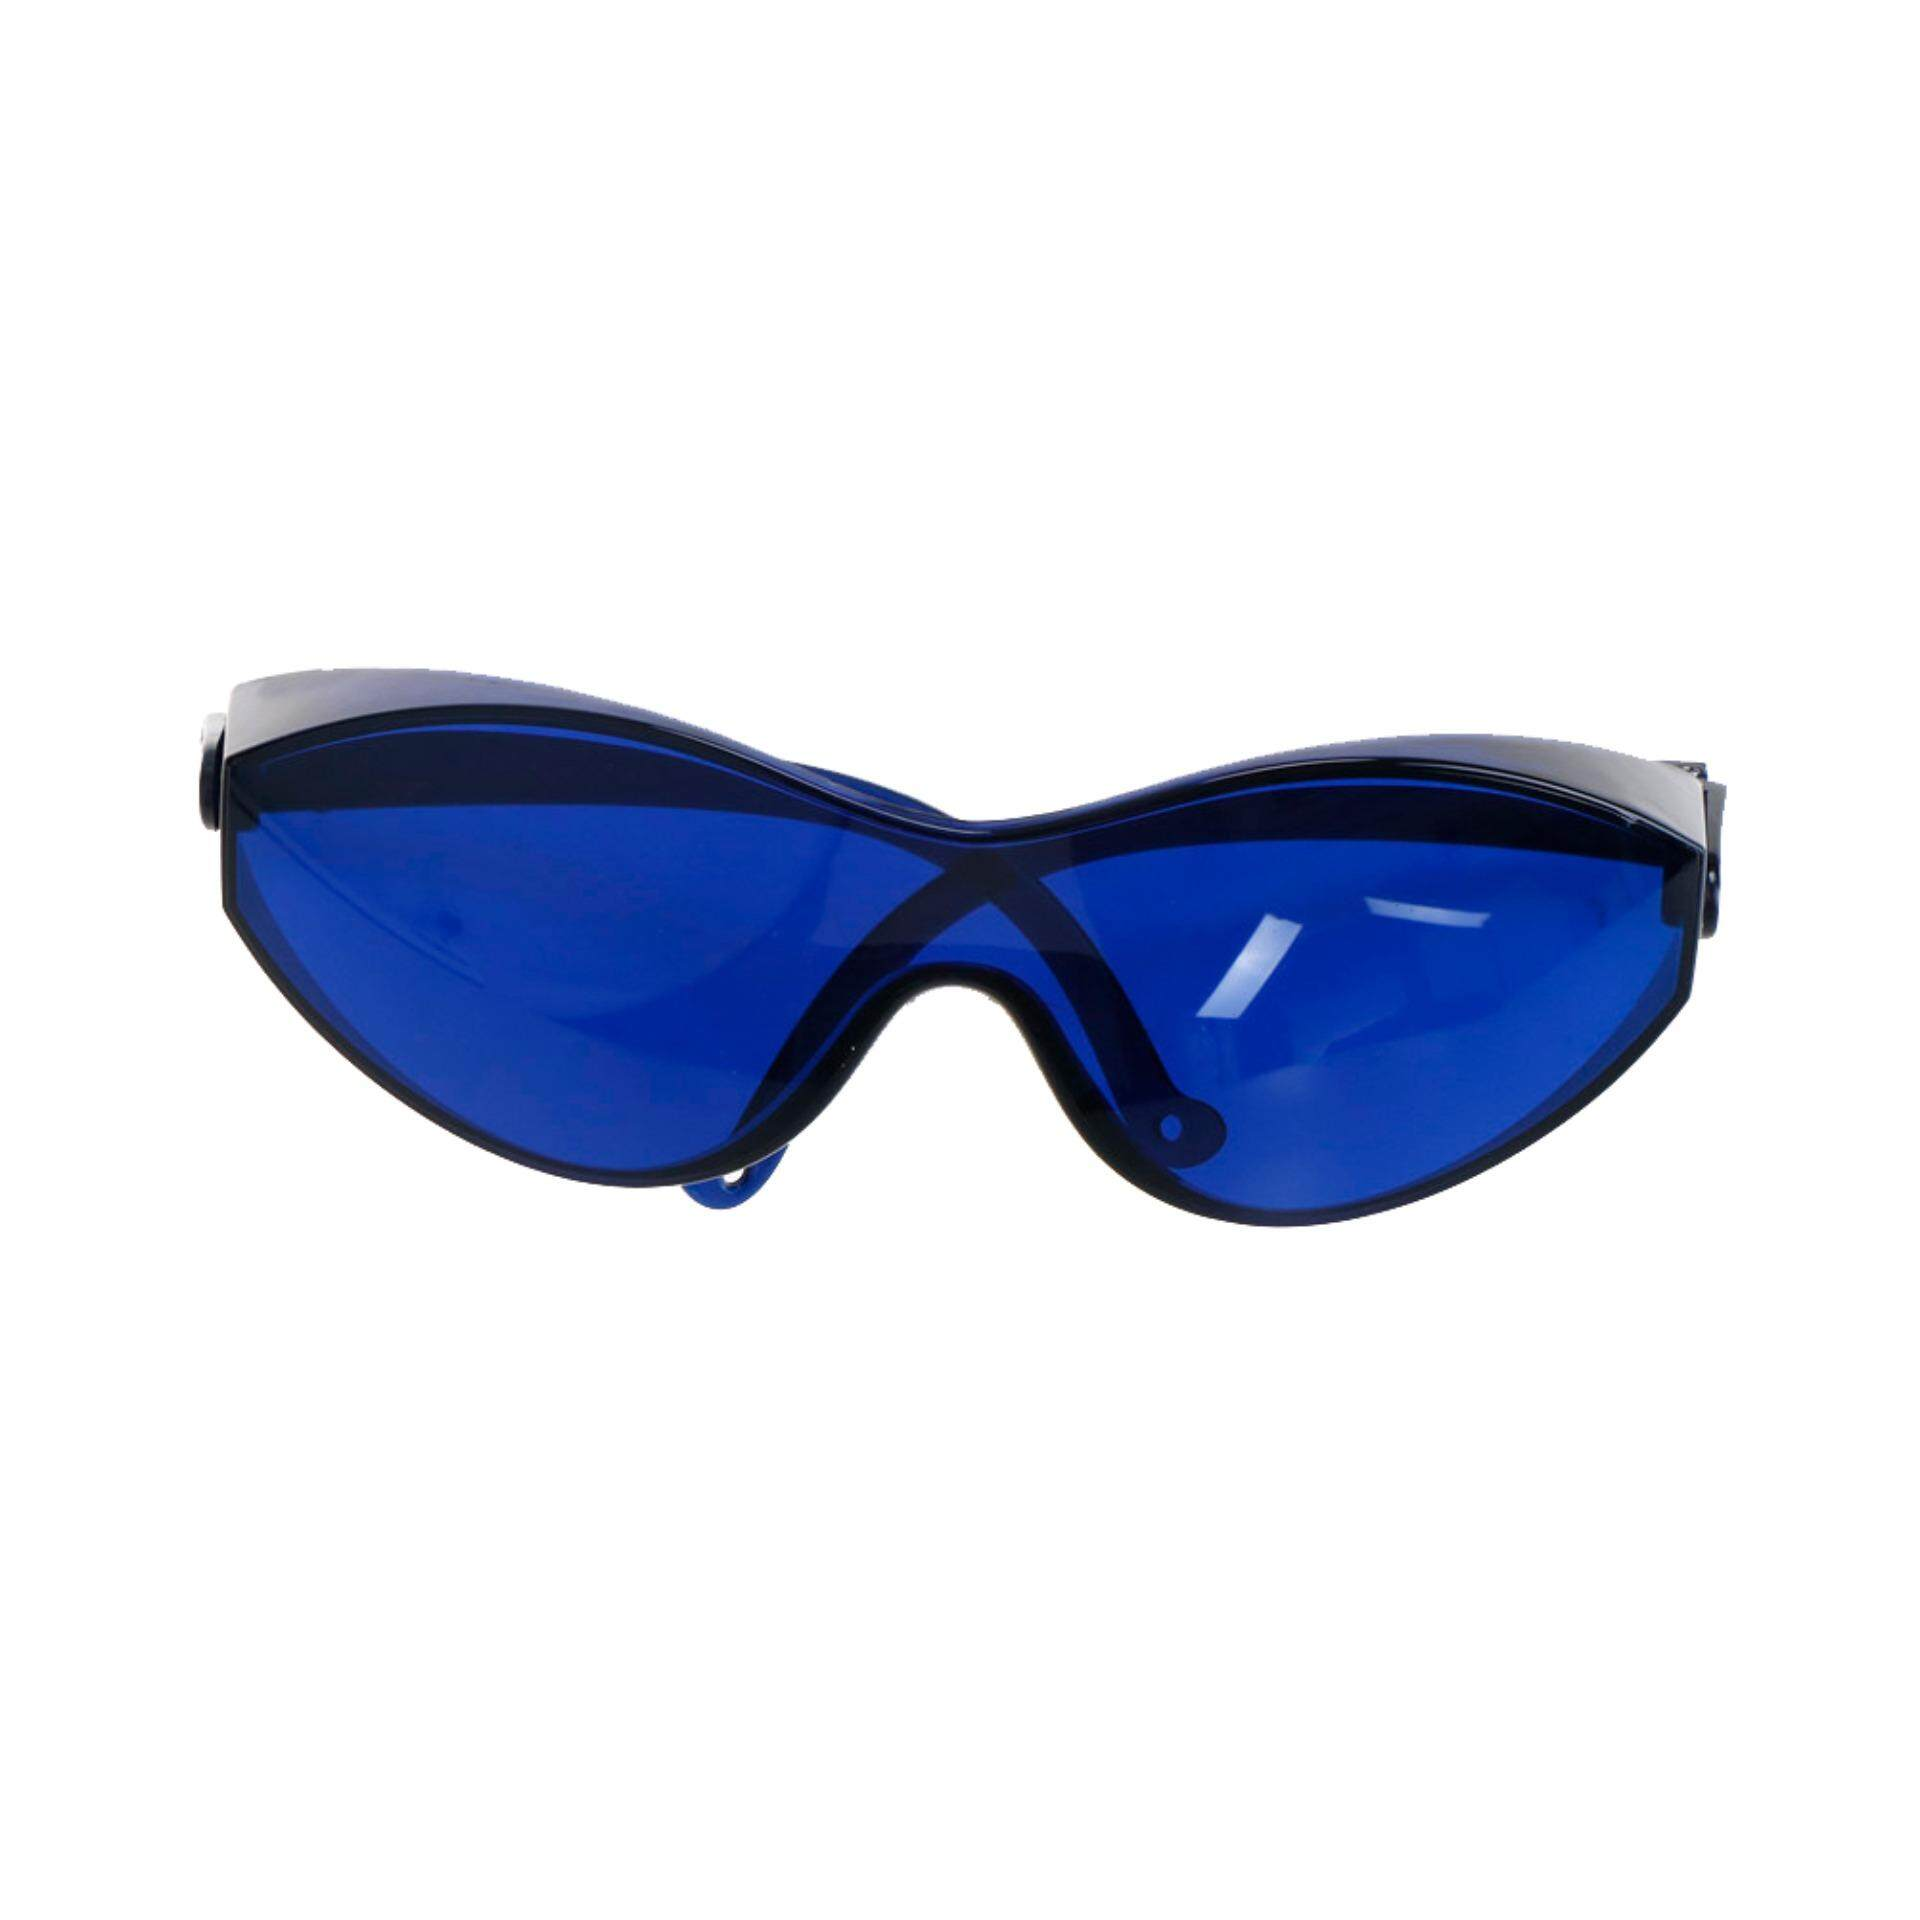 IPL beauty protective glasses red Laser on Color light Safety goggles